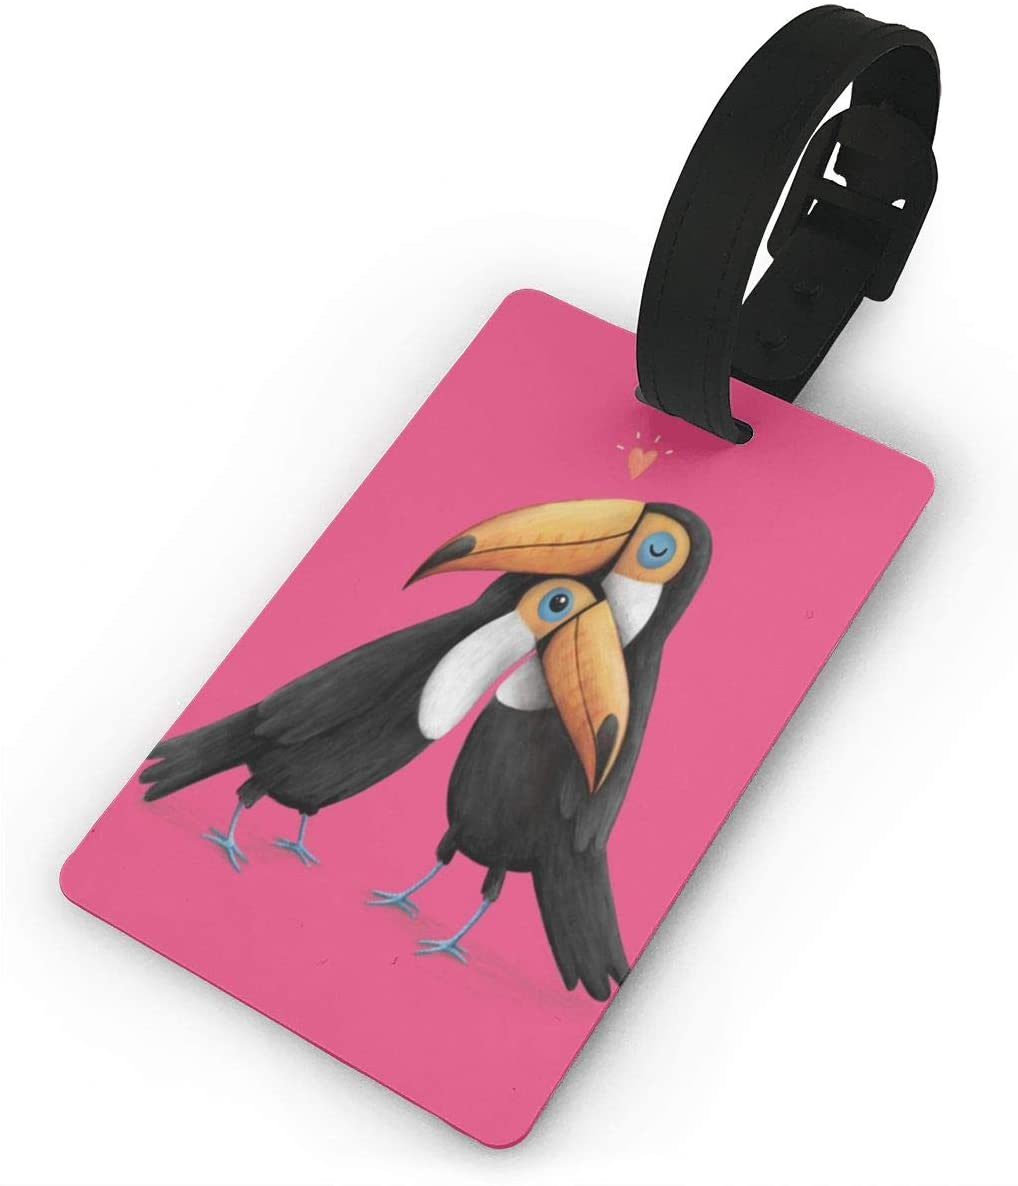 Field Rain Toucans Hug Fashion Luggage Tag PVC Travel ID Suitcases Label For Bag